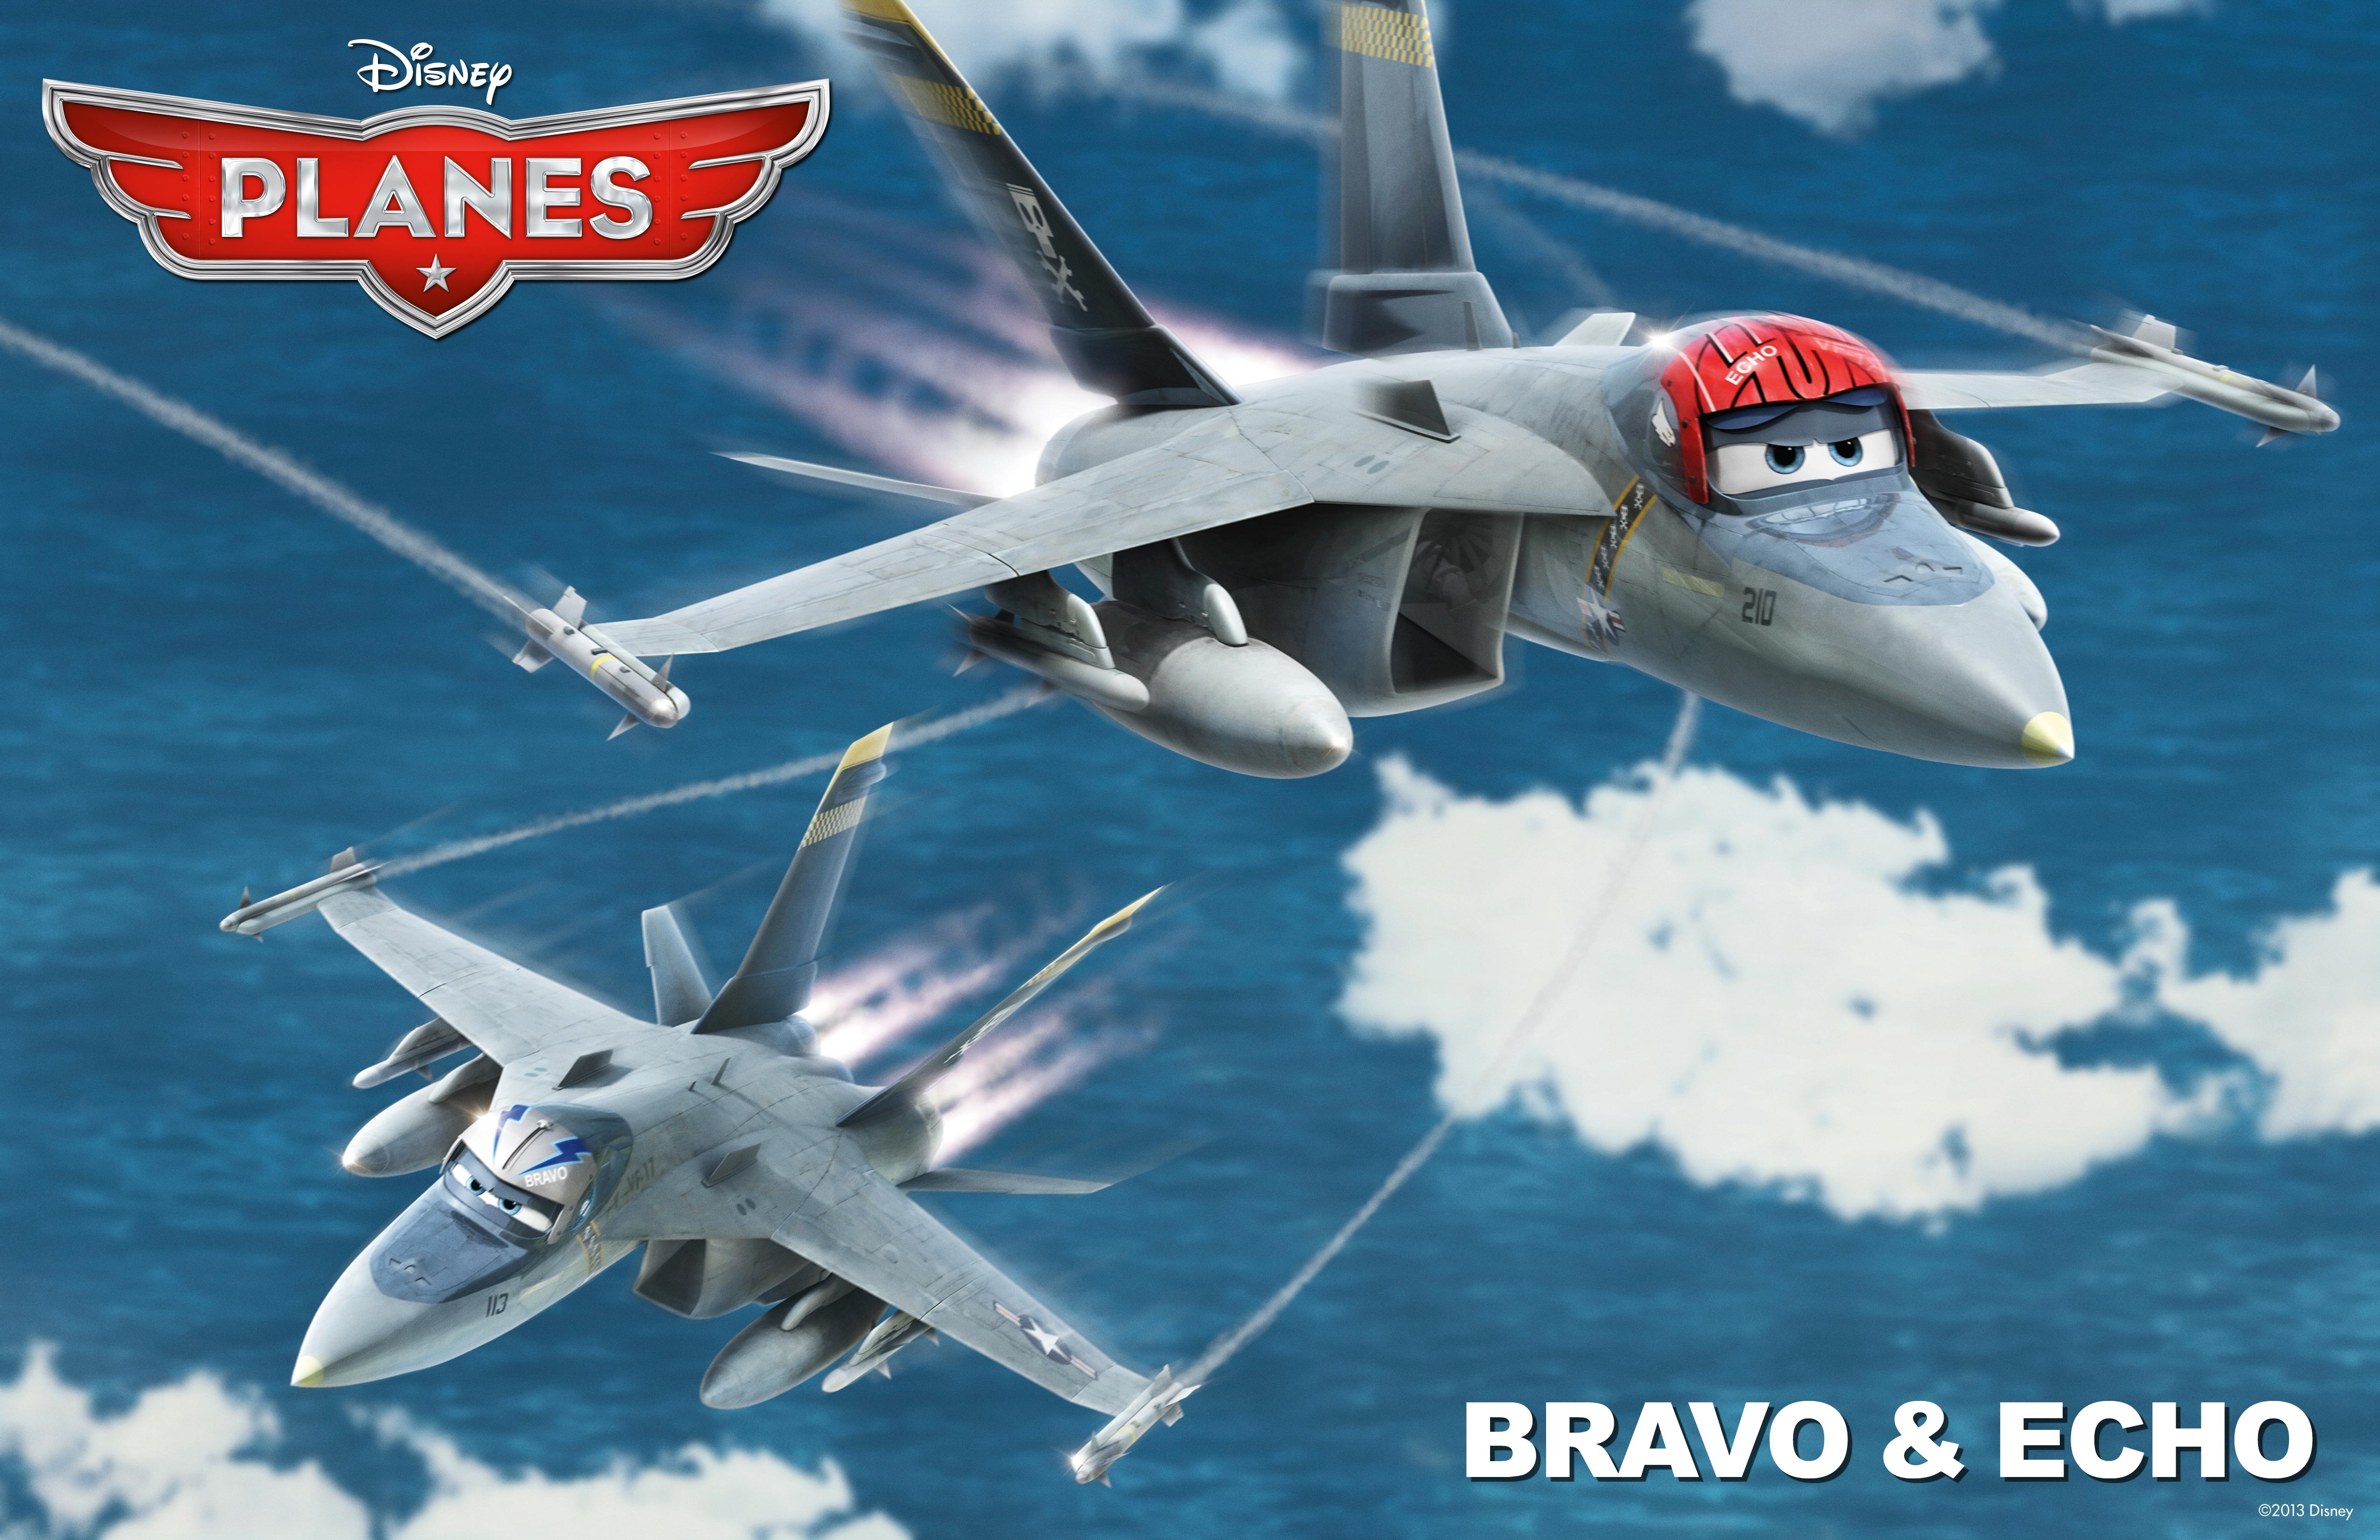 bravo echo disney pixar planes free hd wallpaper